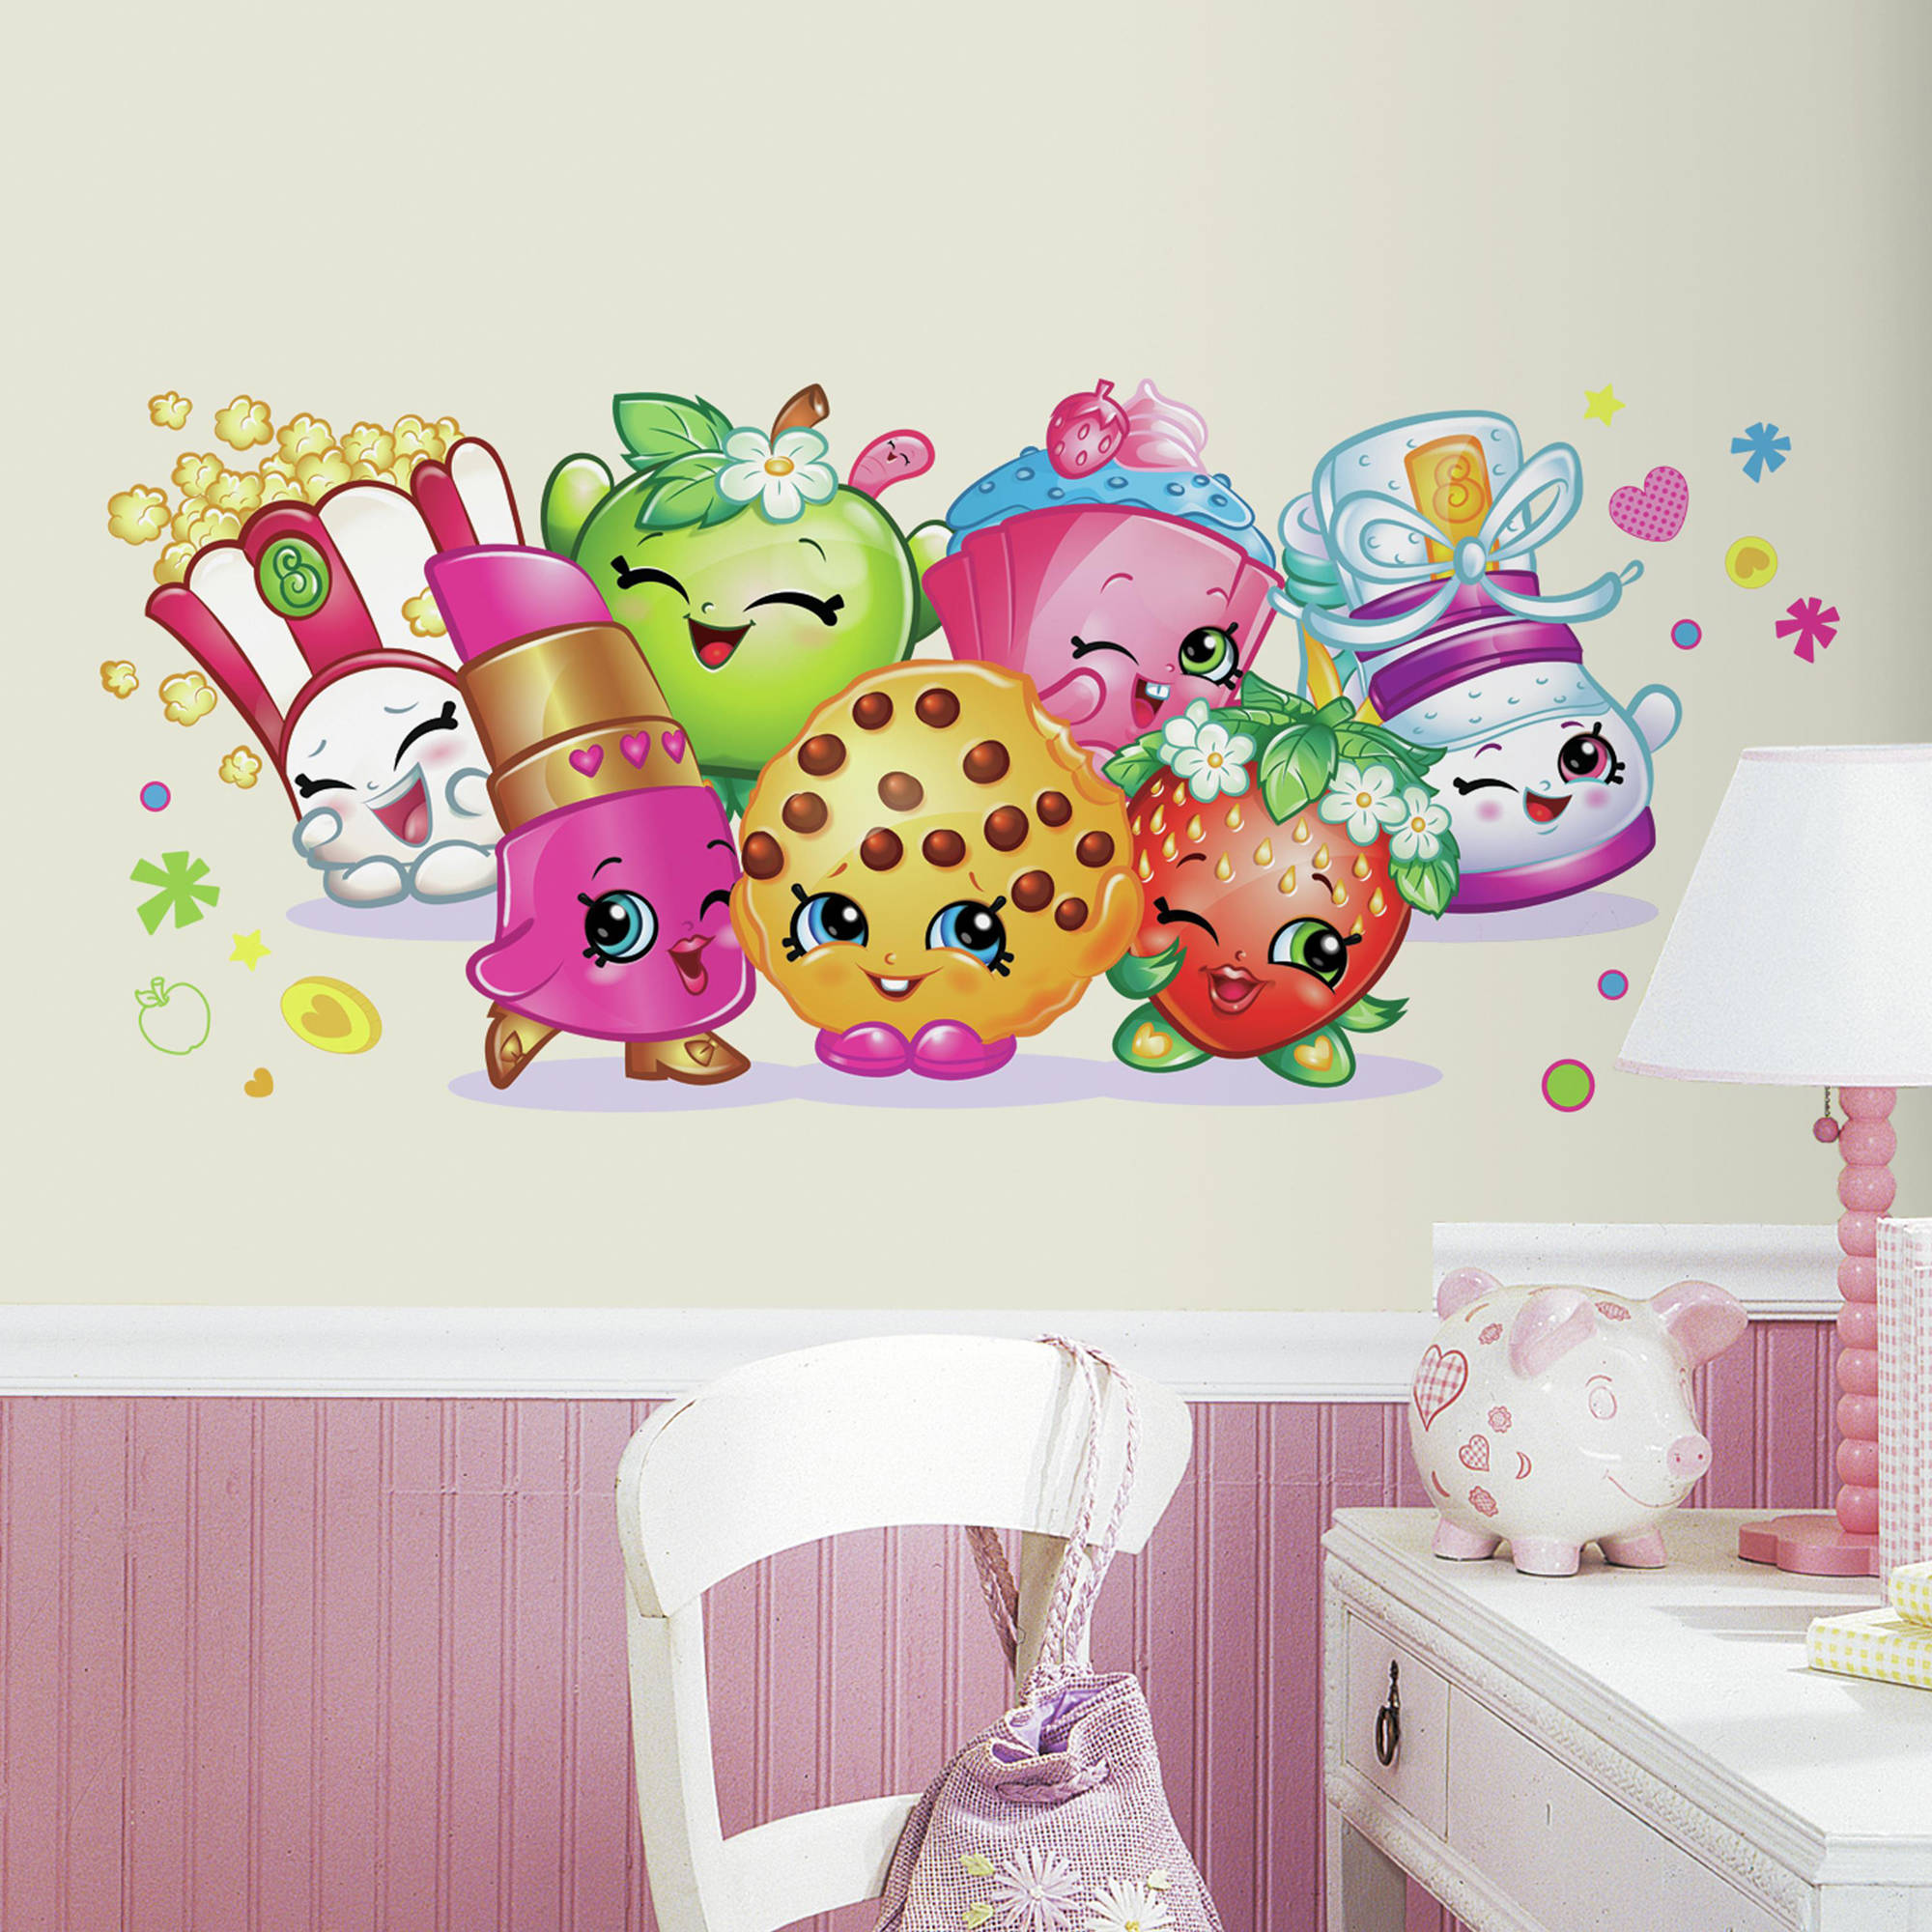 RoomMates Shopkins Burst Peel and Stick Giant Wall Decals